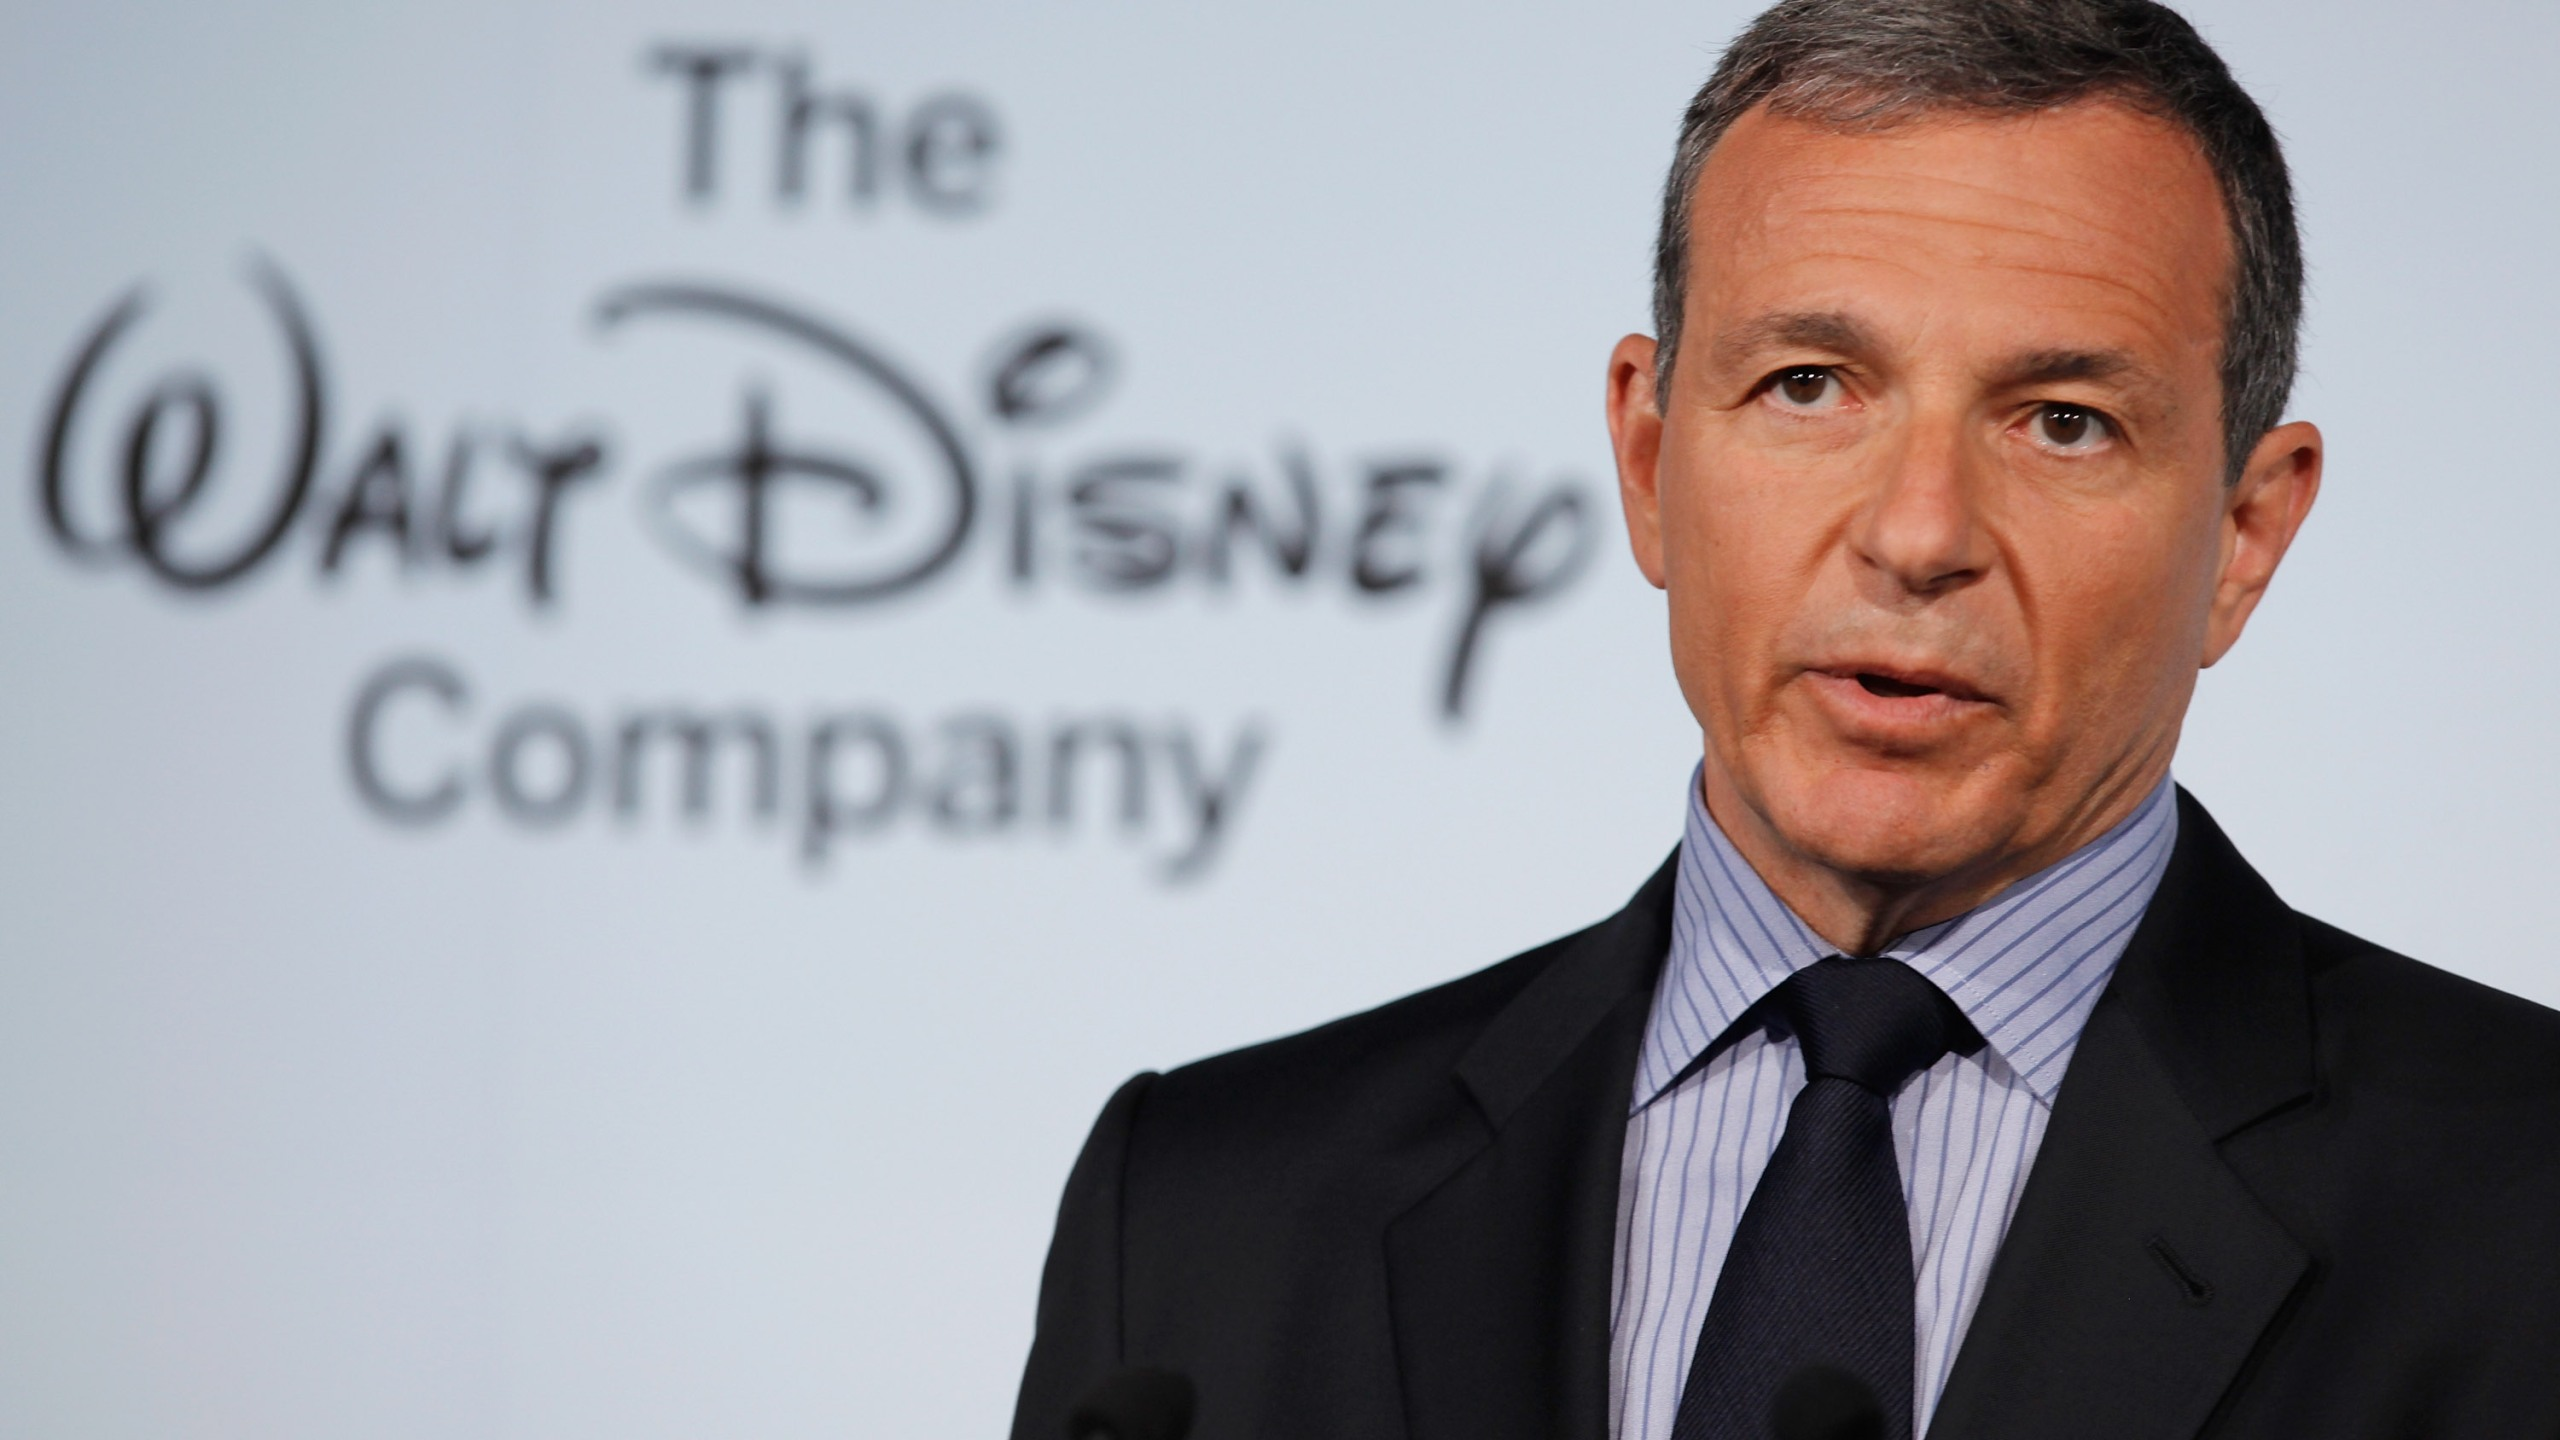 The Walt Disney Company Chairman and CEO Robert Iger delivers remarks during an event on June 5, 2012, in Washington, DC. (Chip Somodevilla/Getty Images)